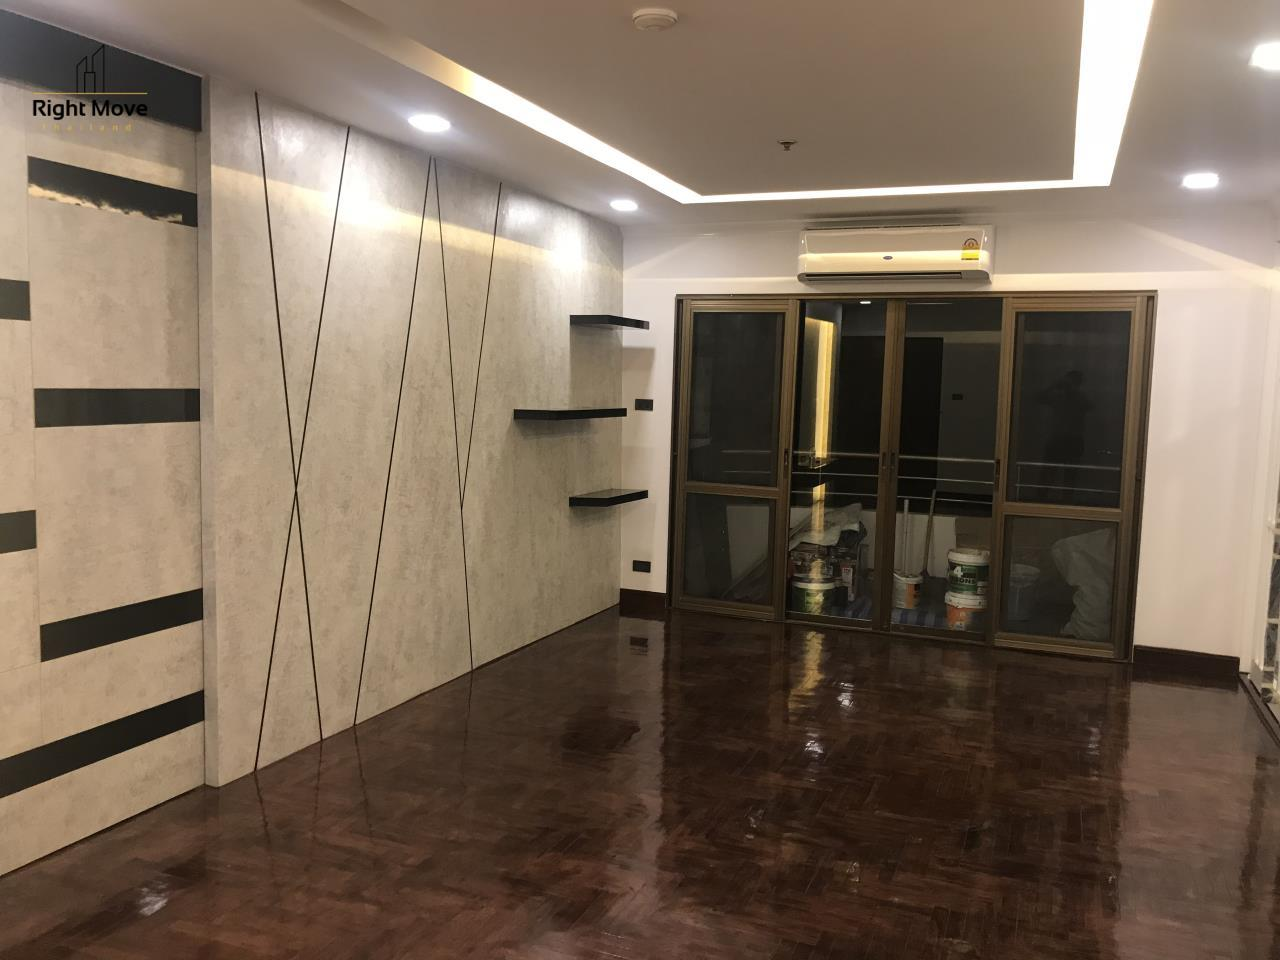 Right Move Thailand Agency's CS2667 Top View Tower For Sale 10,500,000 THB - 3 Bedrooms - 104 Sqm 7